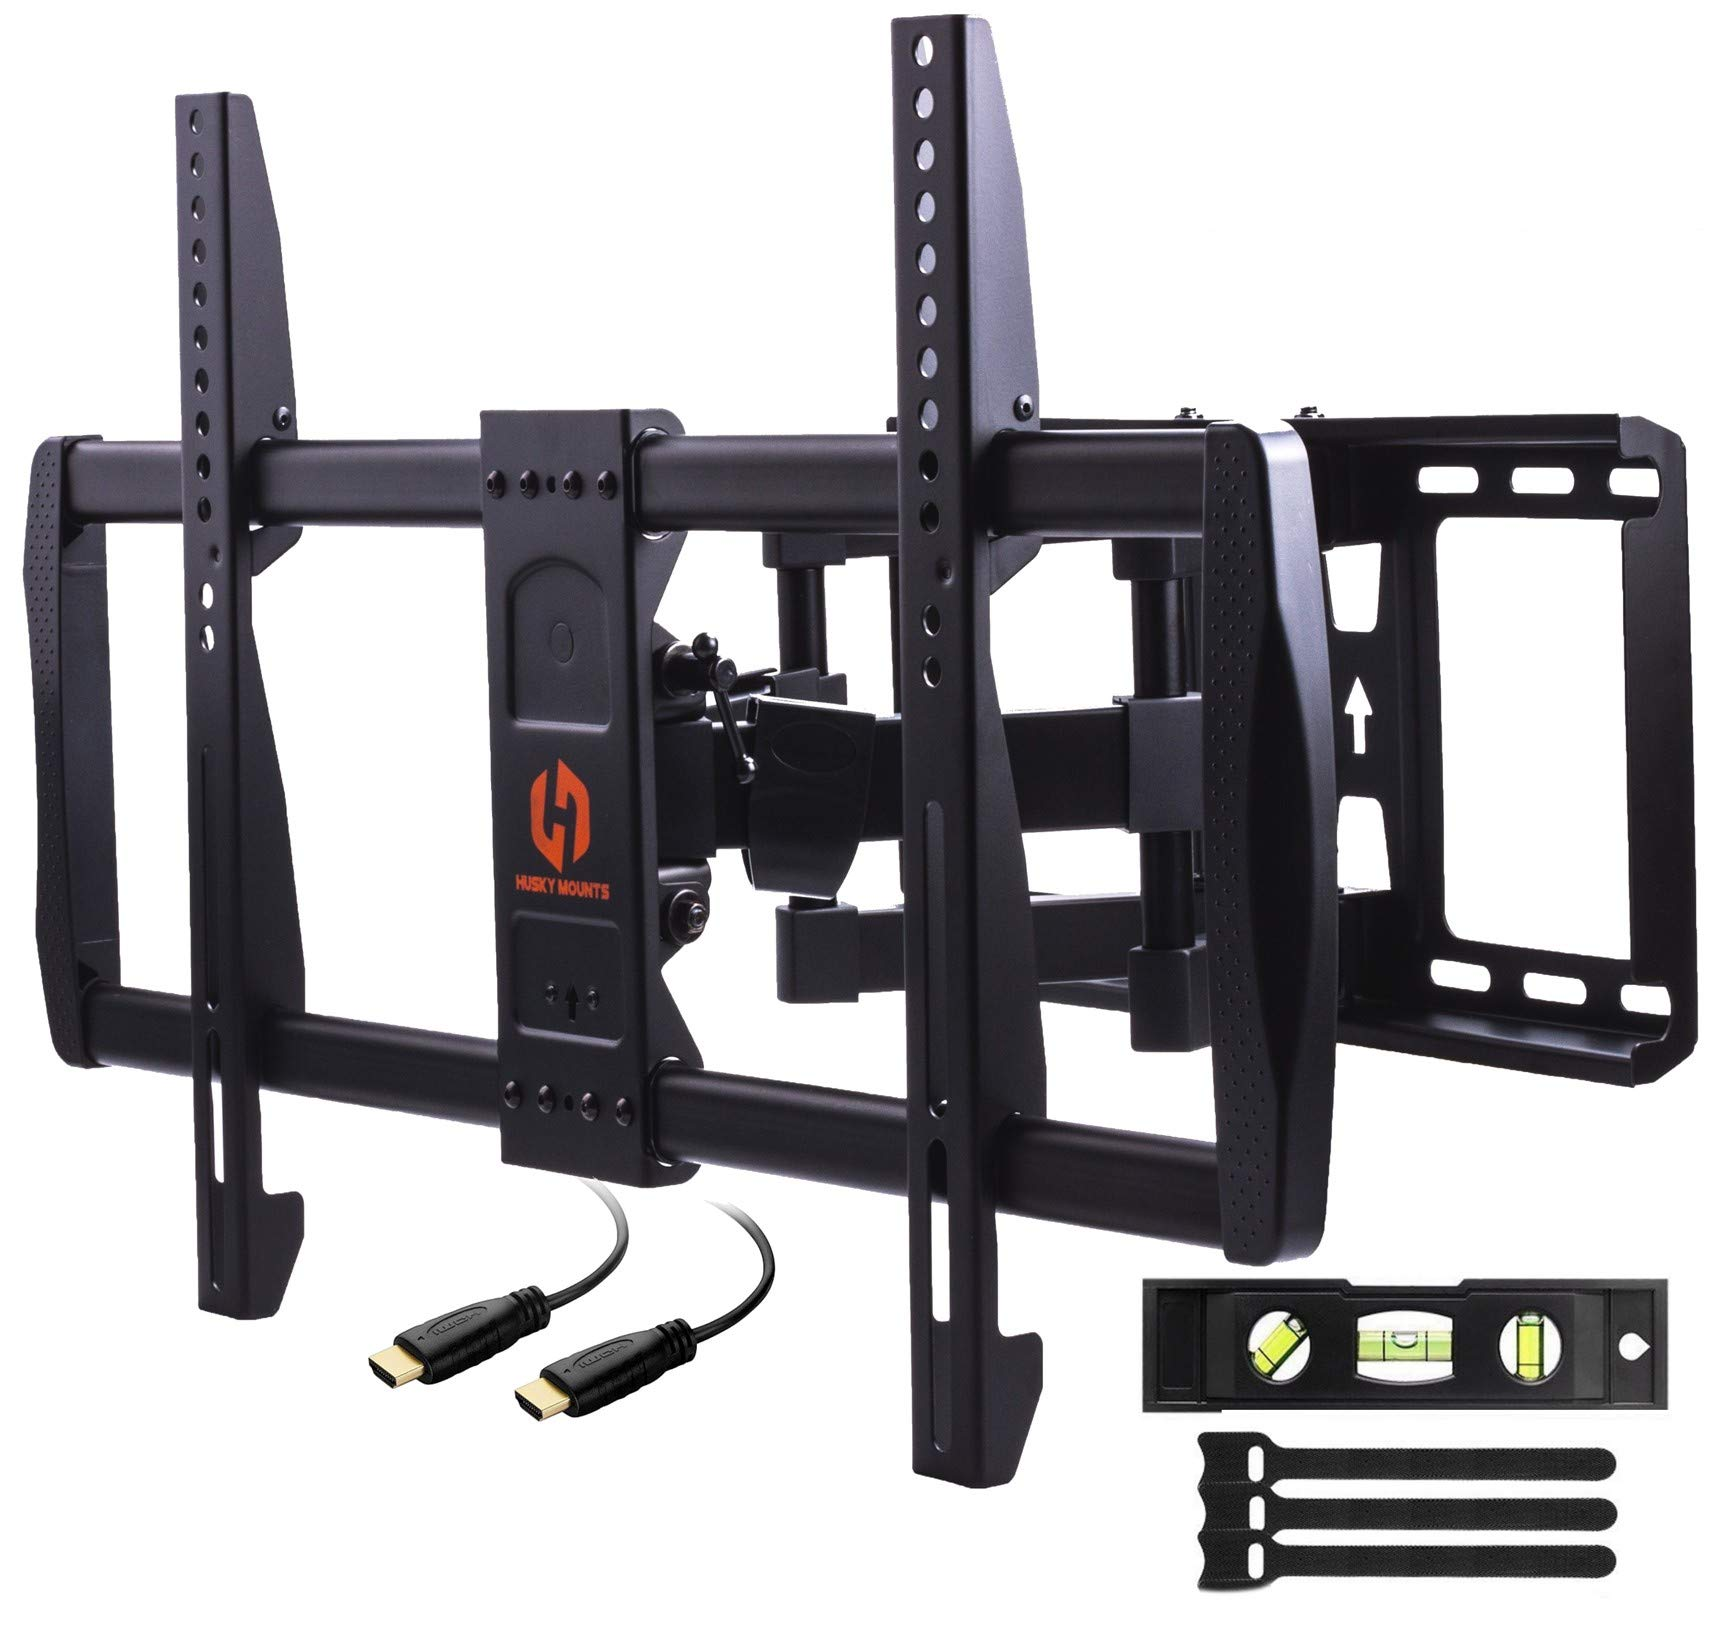 Husky Mounts Swivel TV Wall Mount Fits Most 37 – 70 inch LED LCD OLED Smart Plasma Flat Screen Full Motion Tilt Articulating Dual Arm TV Bracket. VESA 600x400, 400x400 and Smaller, 125 lbs Capacity